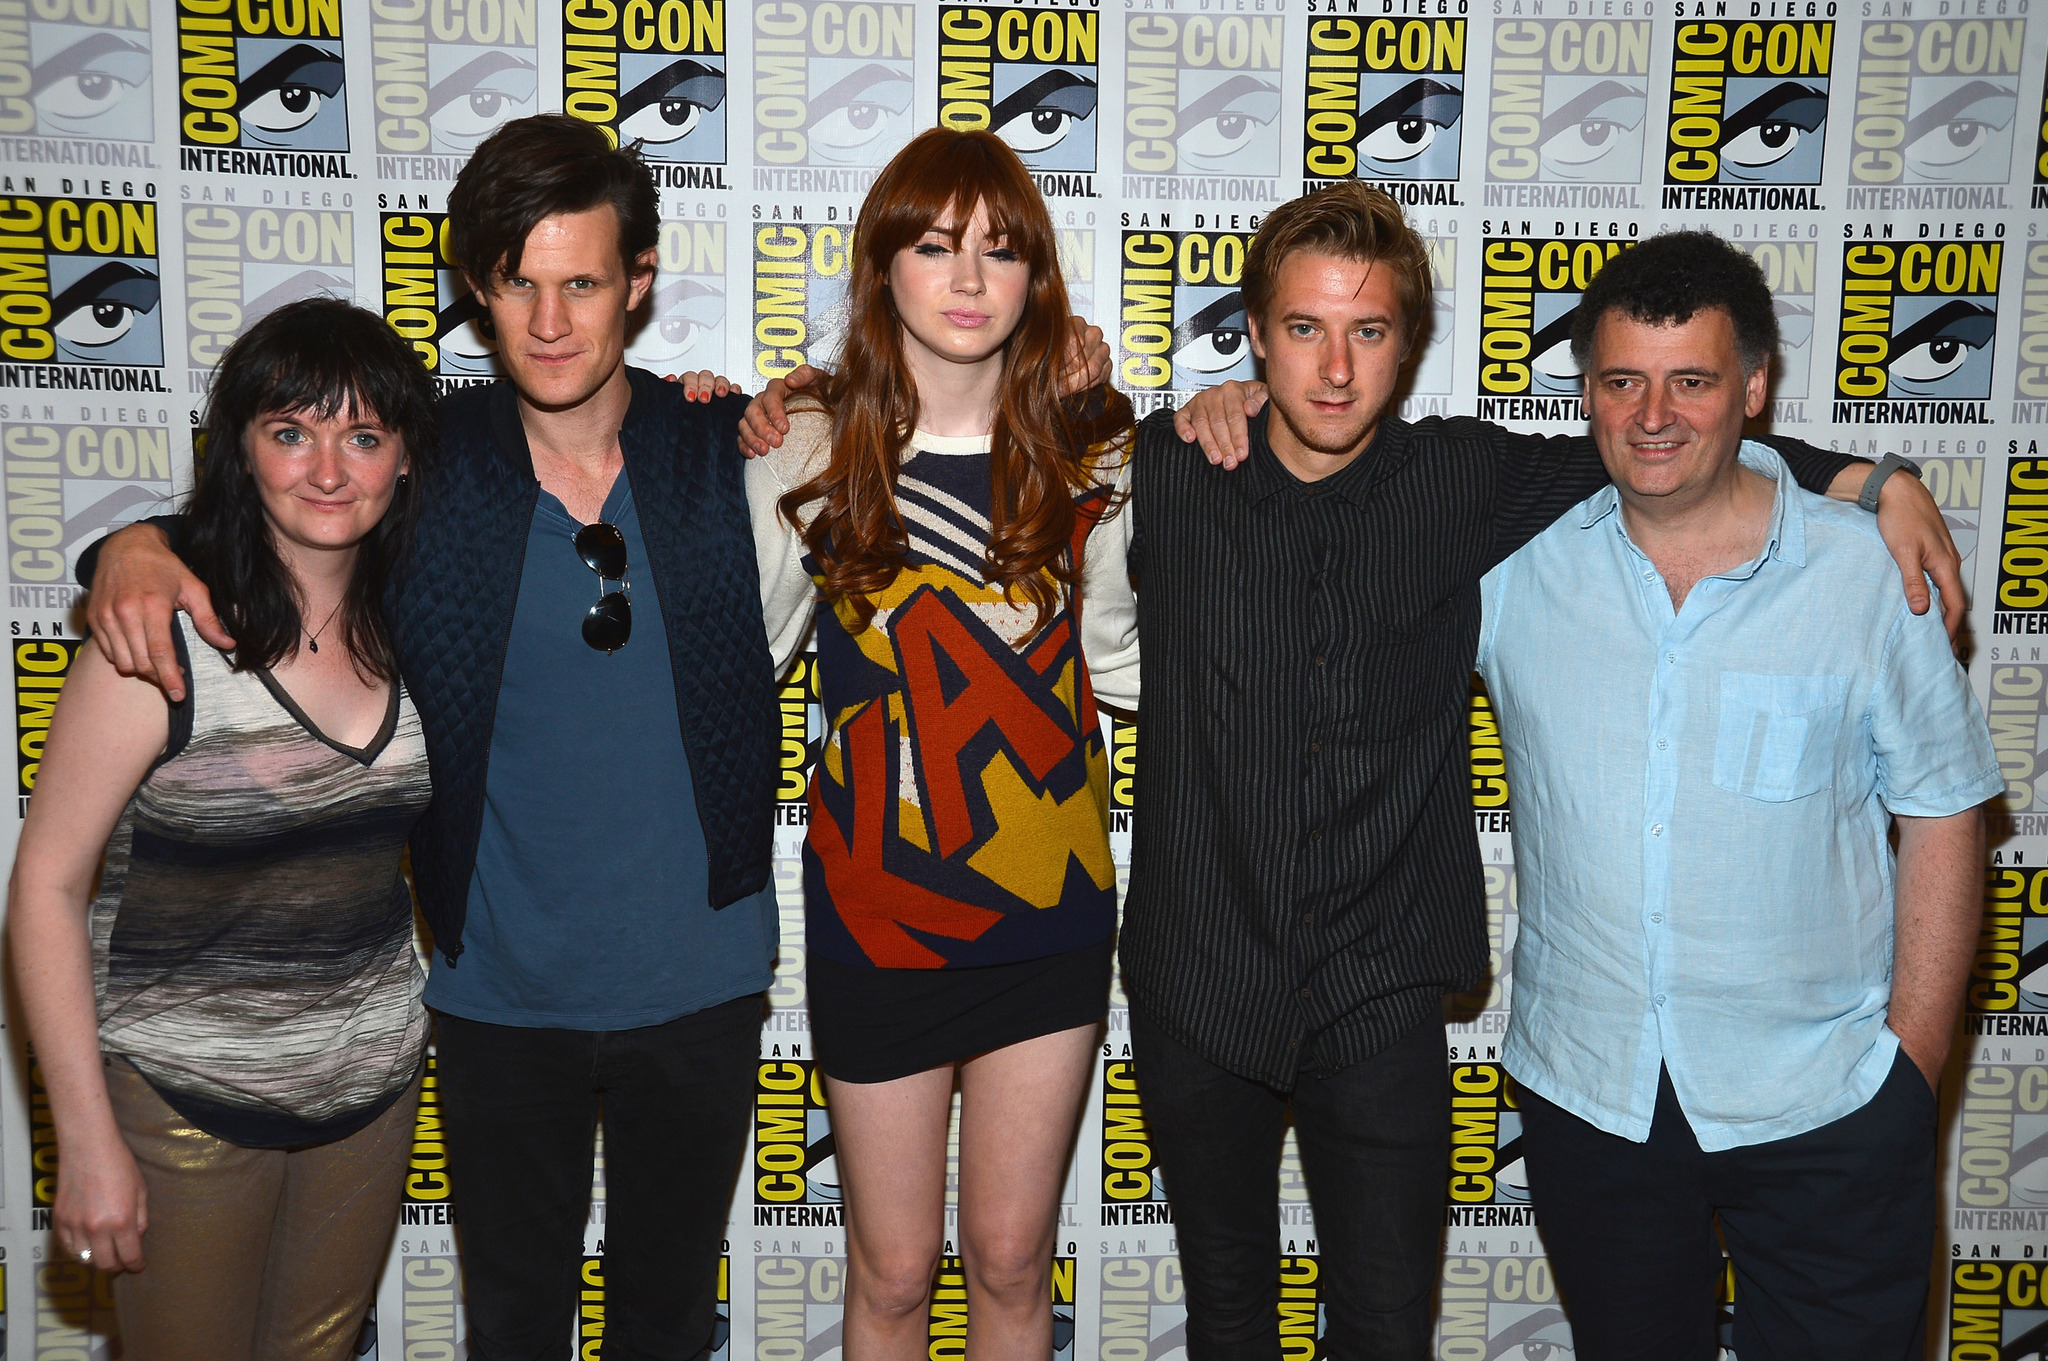 Steven Moffat, Caroline Skinner, Matt Smith, Karen Gillan and Arthur Darvill at event of Doctor Who (2005) photo #489546